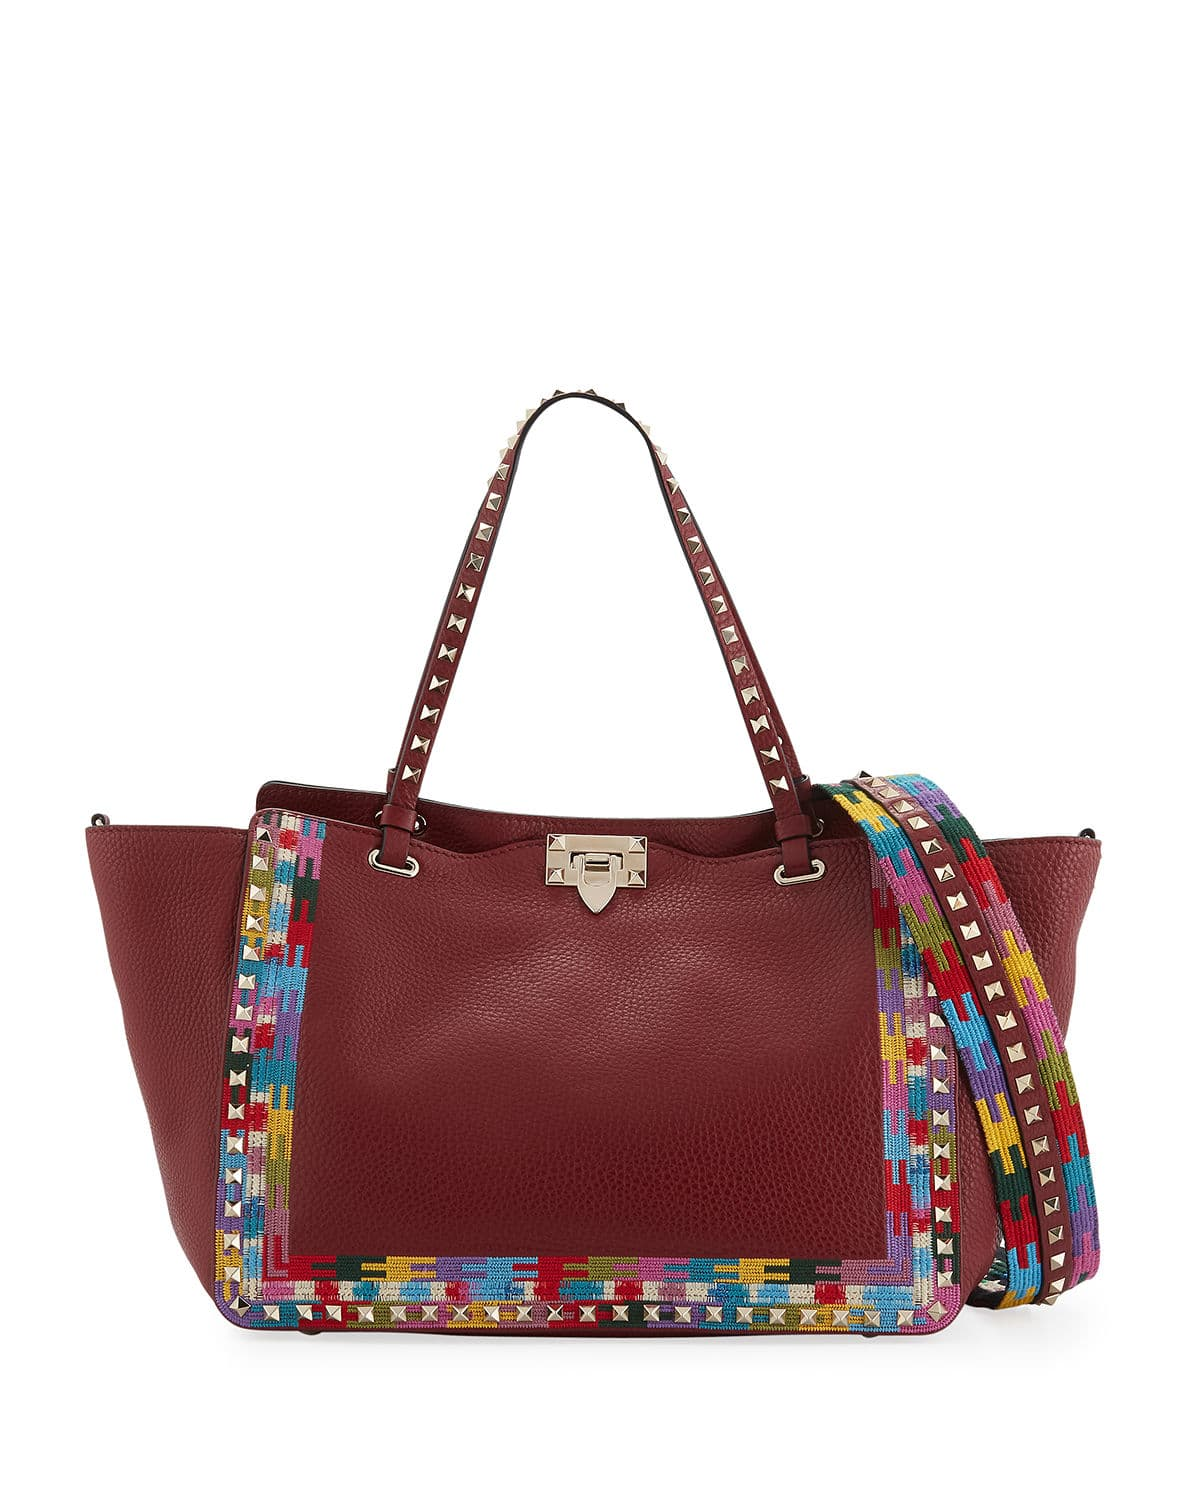 34f0070e82 Valentino Bag Price List Reference Guide | Spotted Fashion